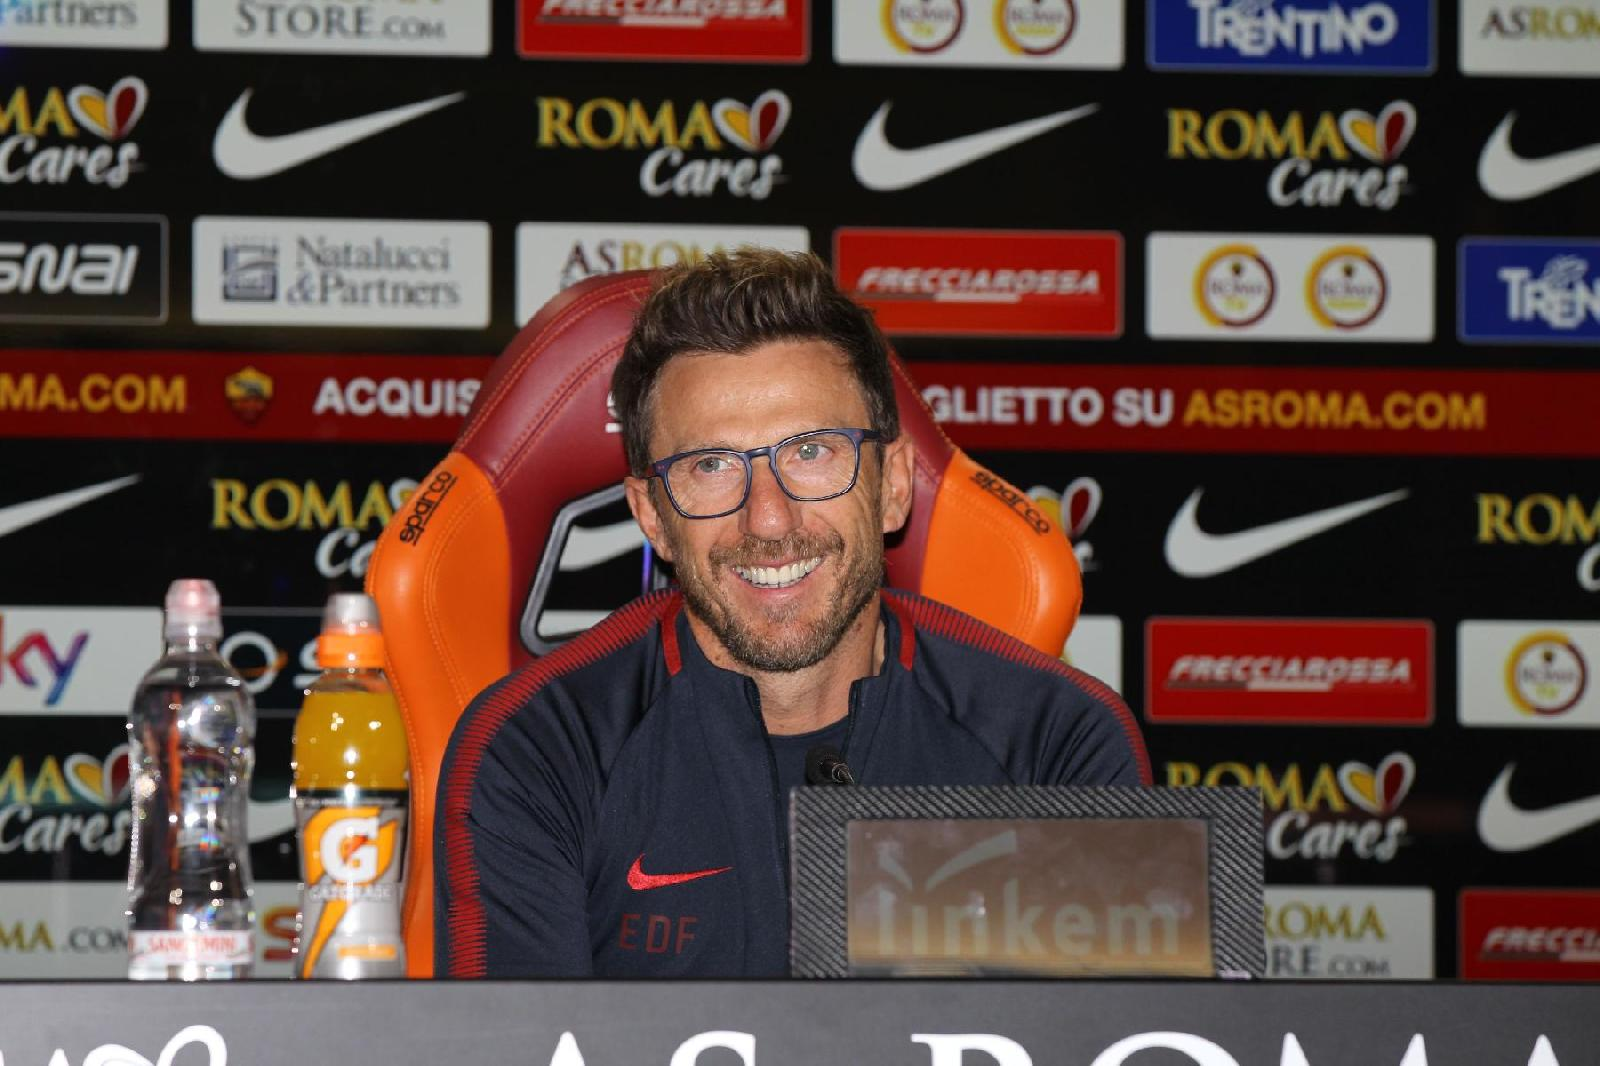 FOTO e VIDEO - Di Francesco: